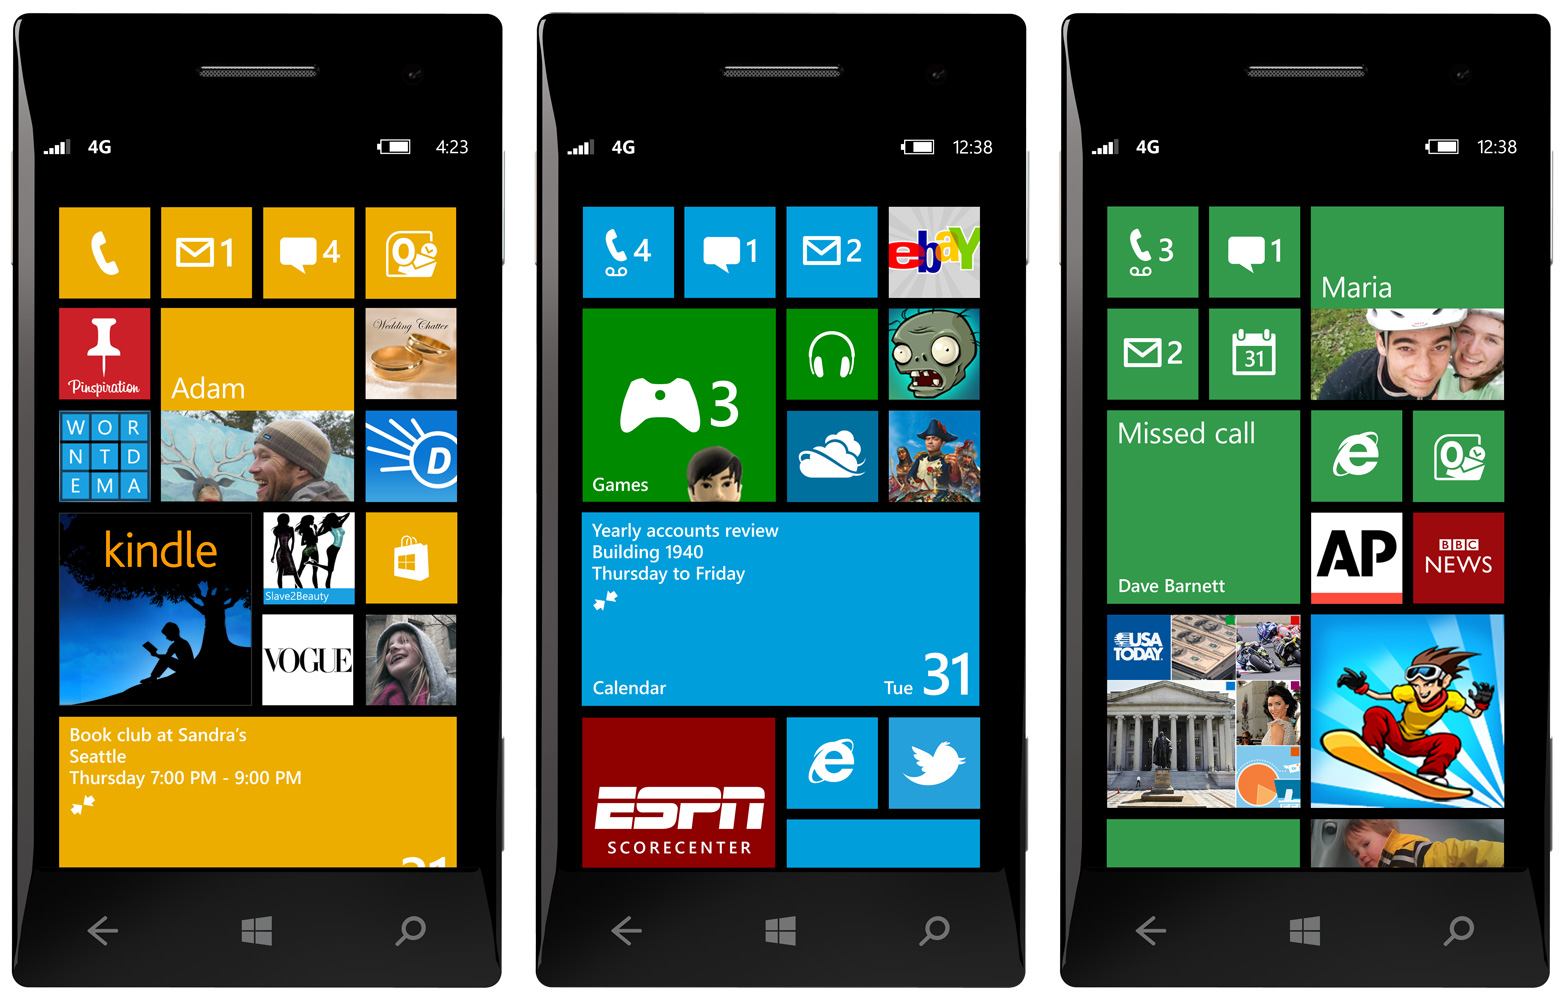 windows-phone-8.1-metro-ui-modern-live-tiles